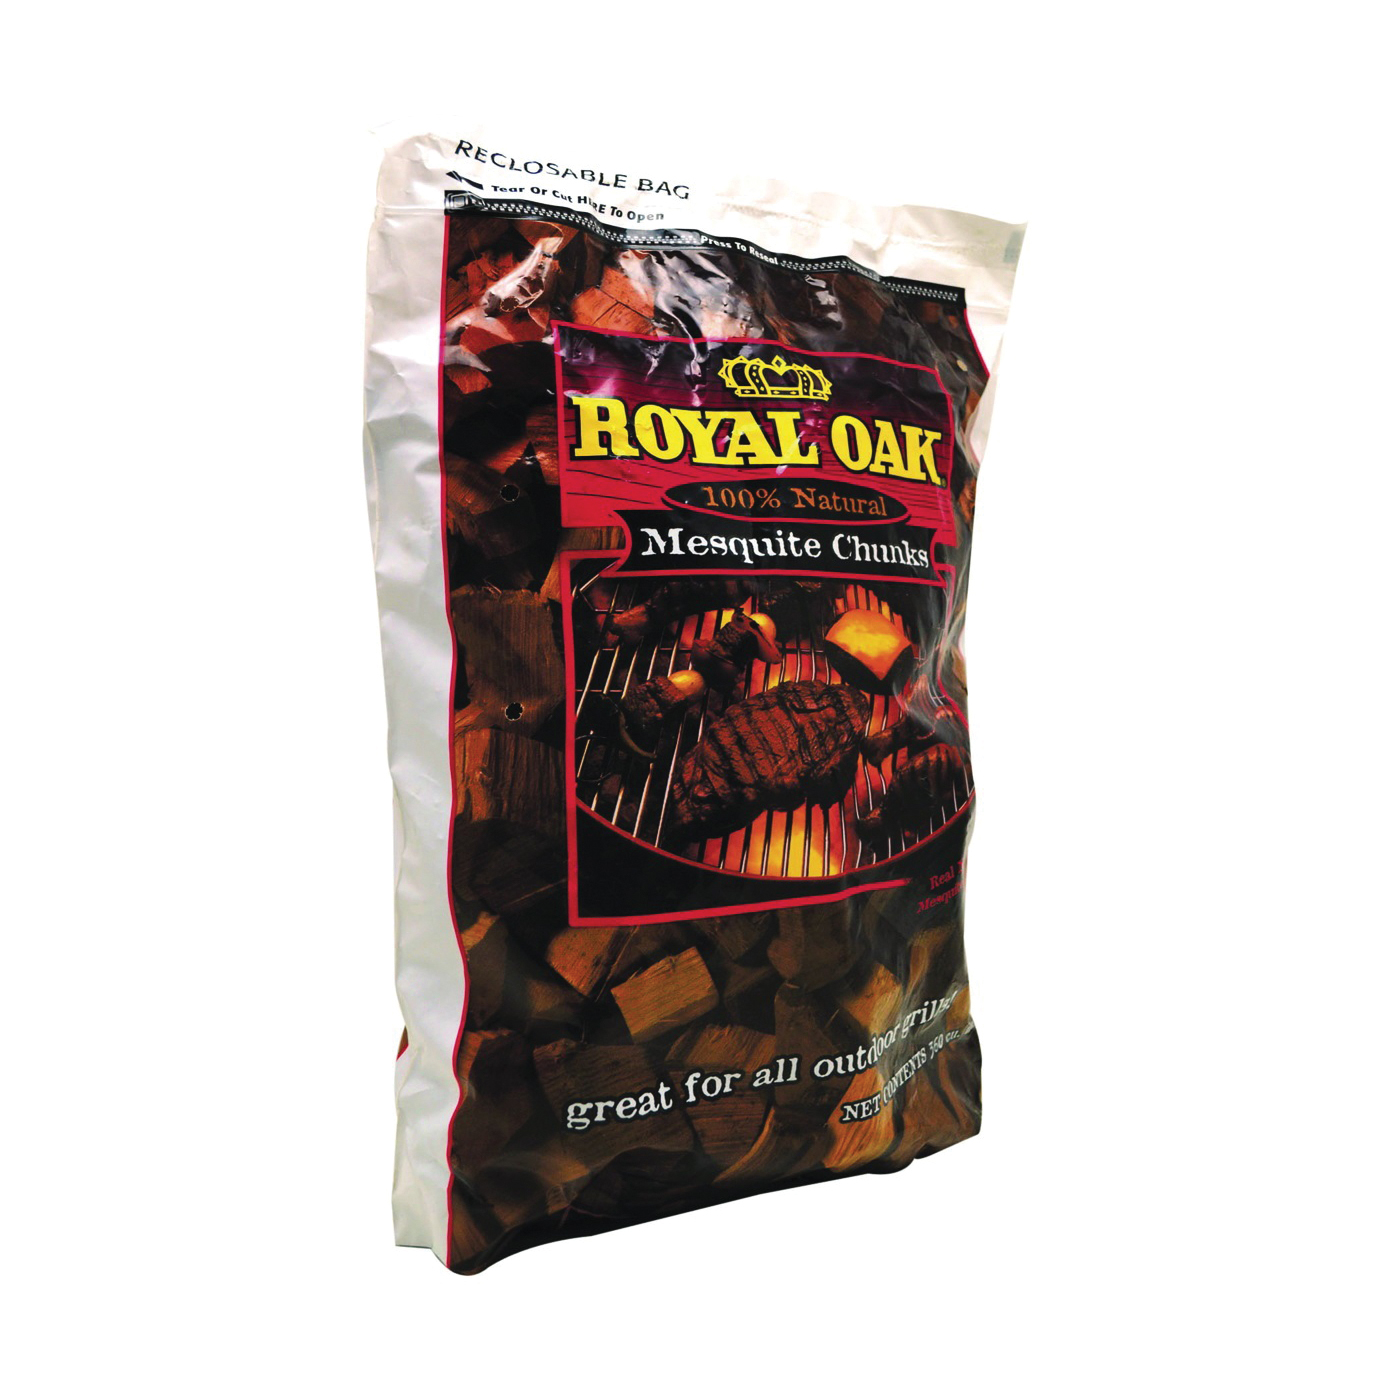 Picture of ROYAL OAK 197-301-163 Wood Chunks, 6 lb Package, Bag